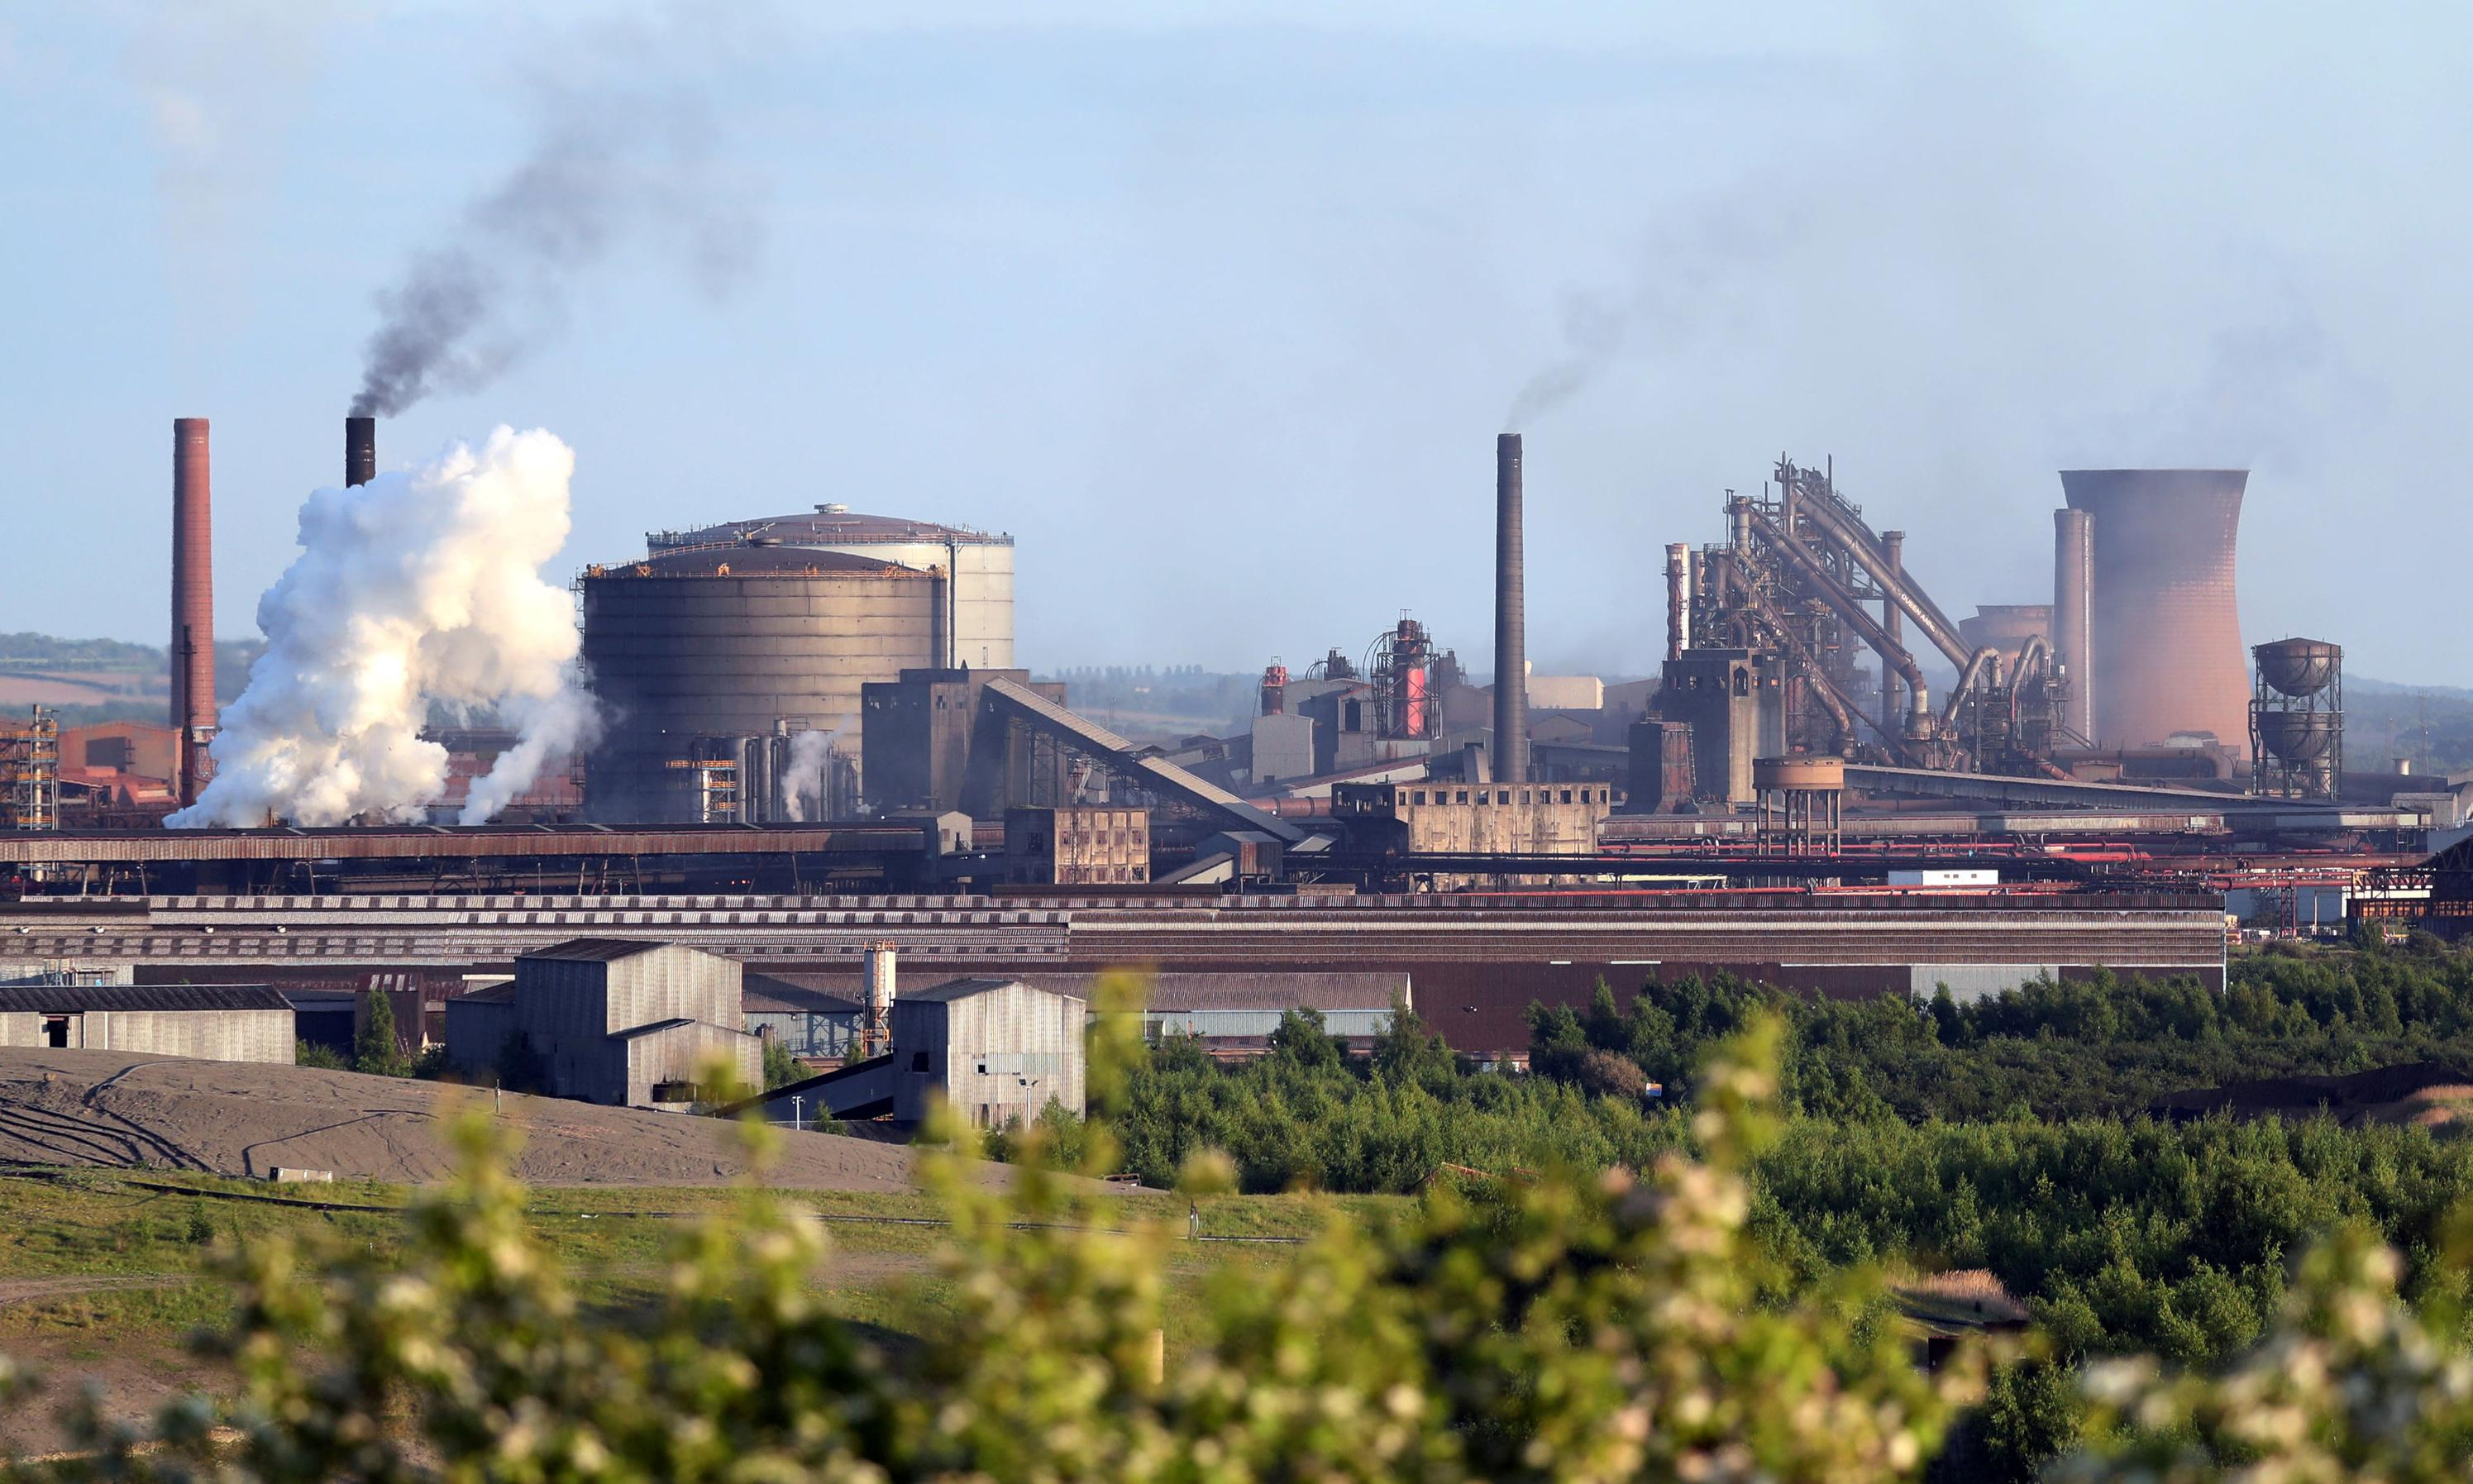 British Steel: provisional deal with Turkish bidder could save 4,000 jobs